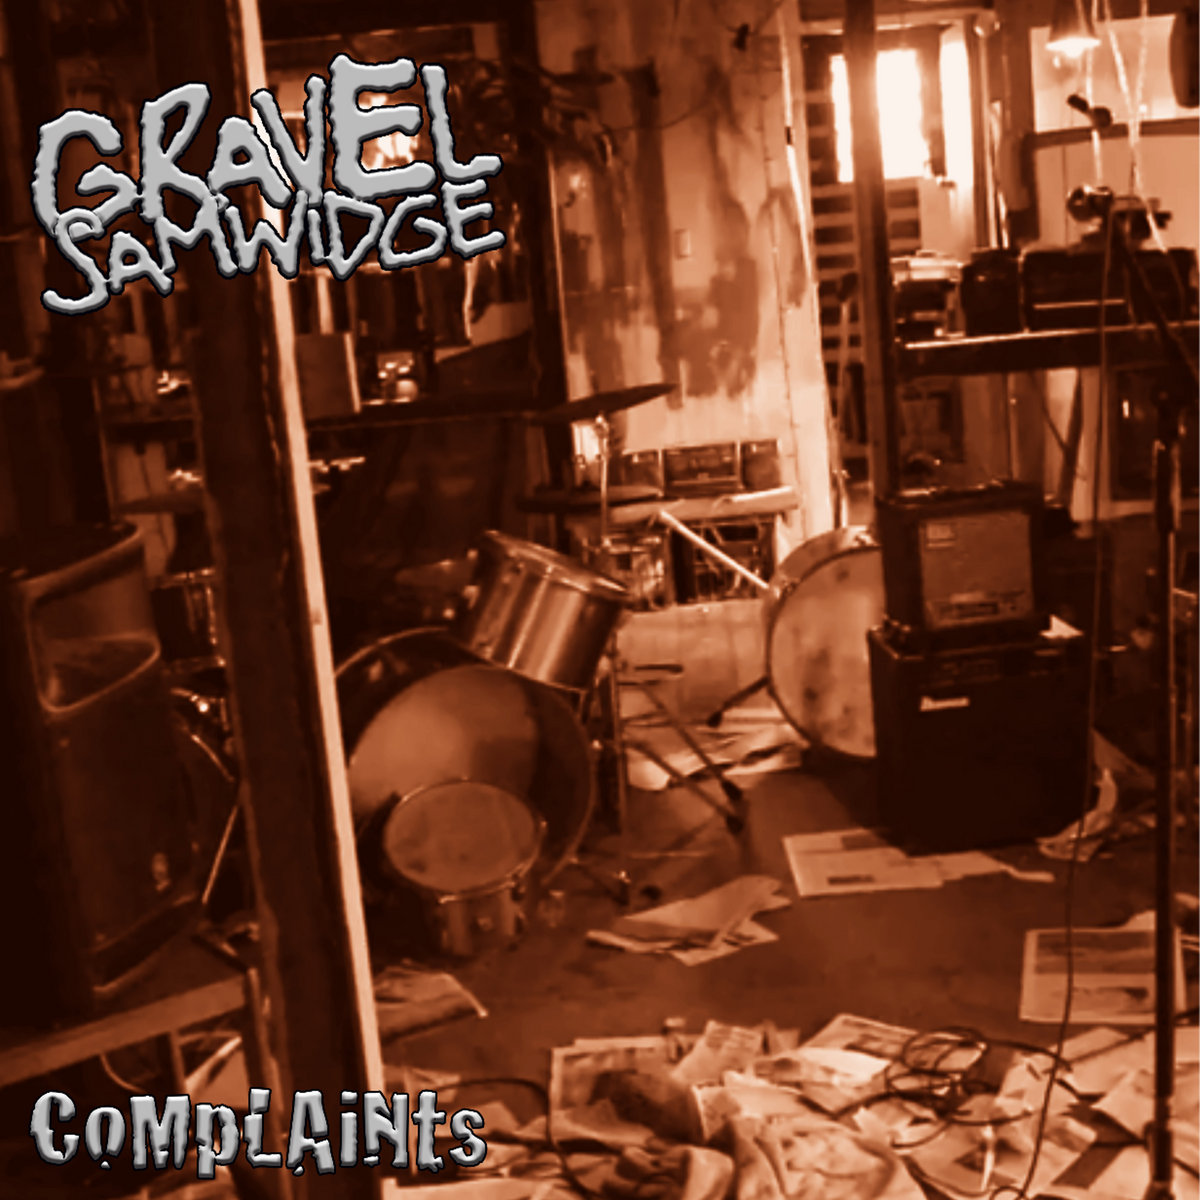 Gravel Samwidge – Complaints